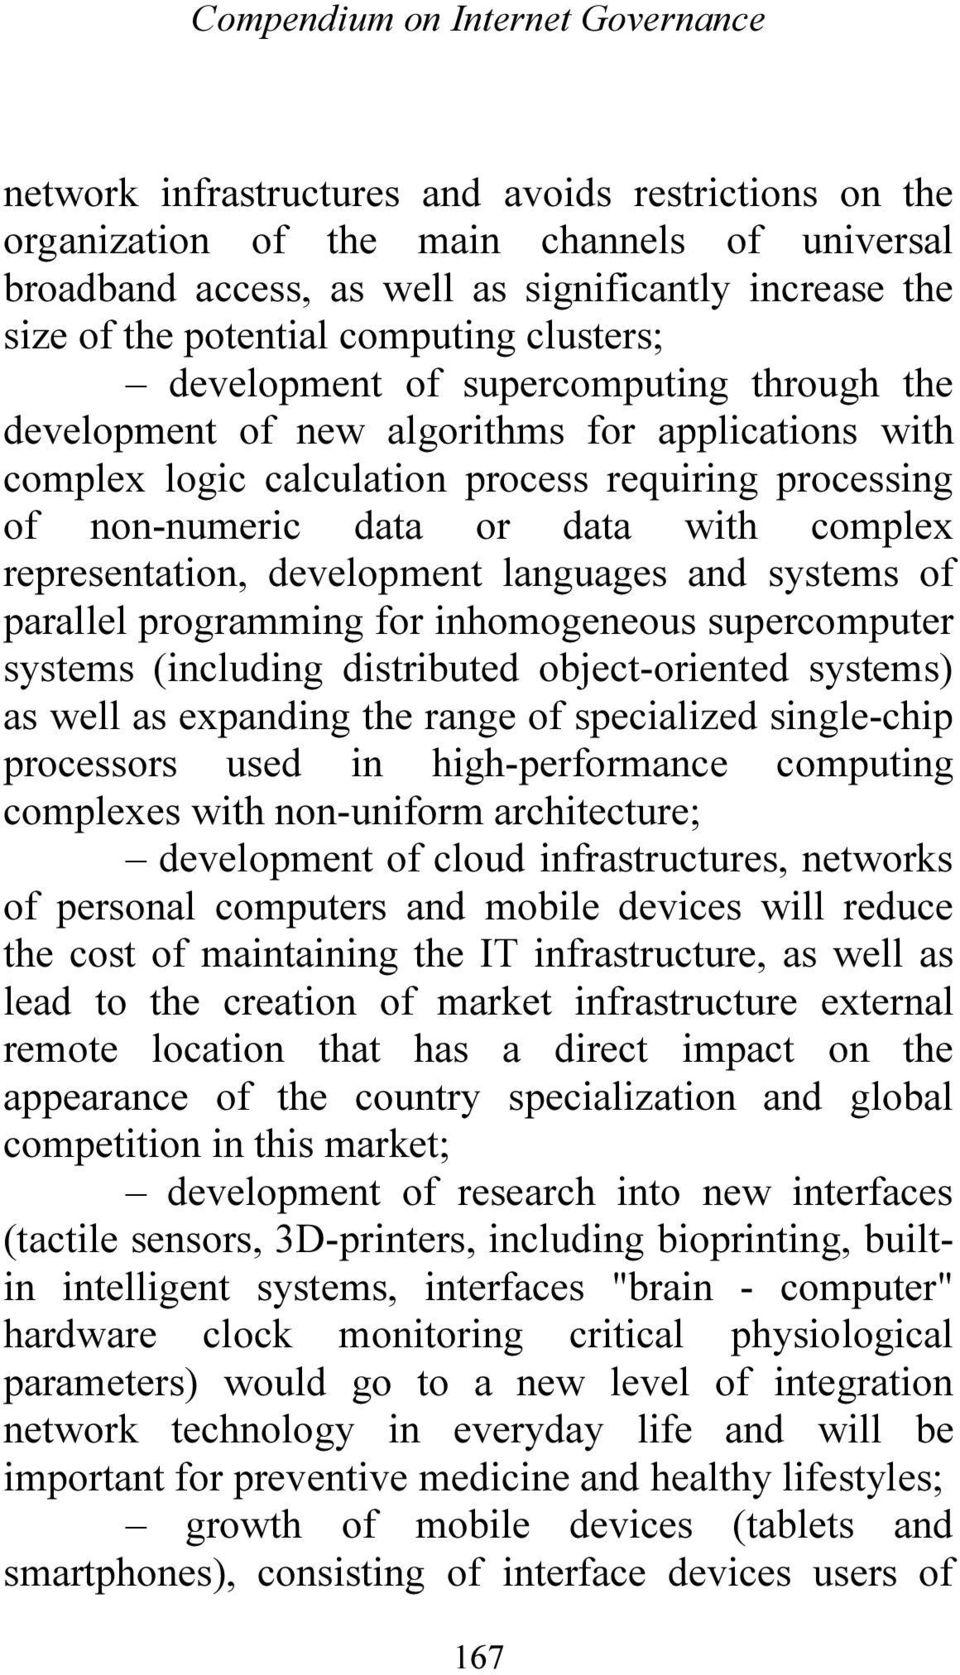 data or data with complex representation, development languages and systems of parallel programming for inhomogeneous supercomputer systems (including distributed object-oriented systems) as well as